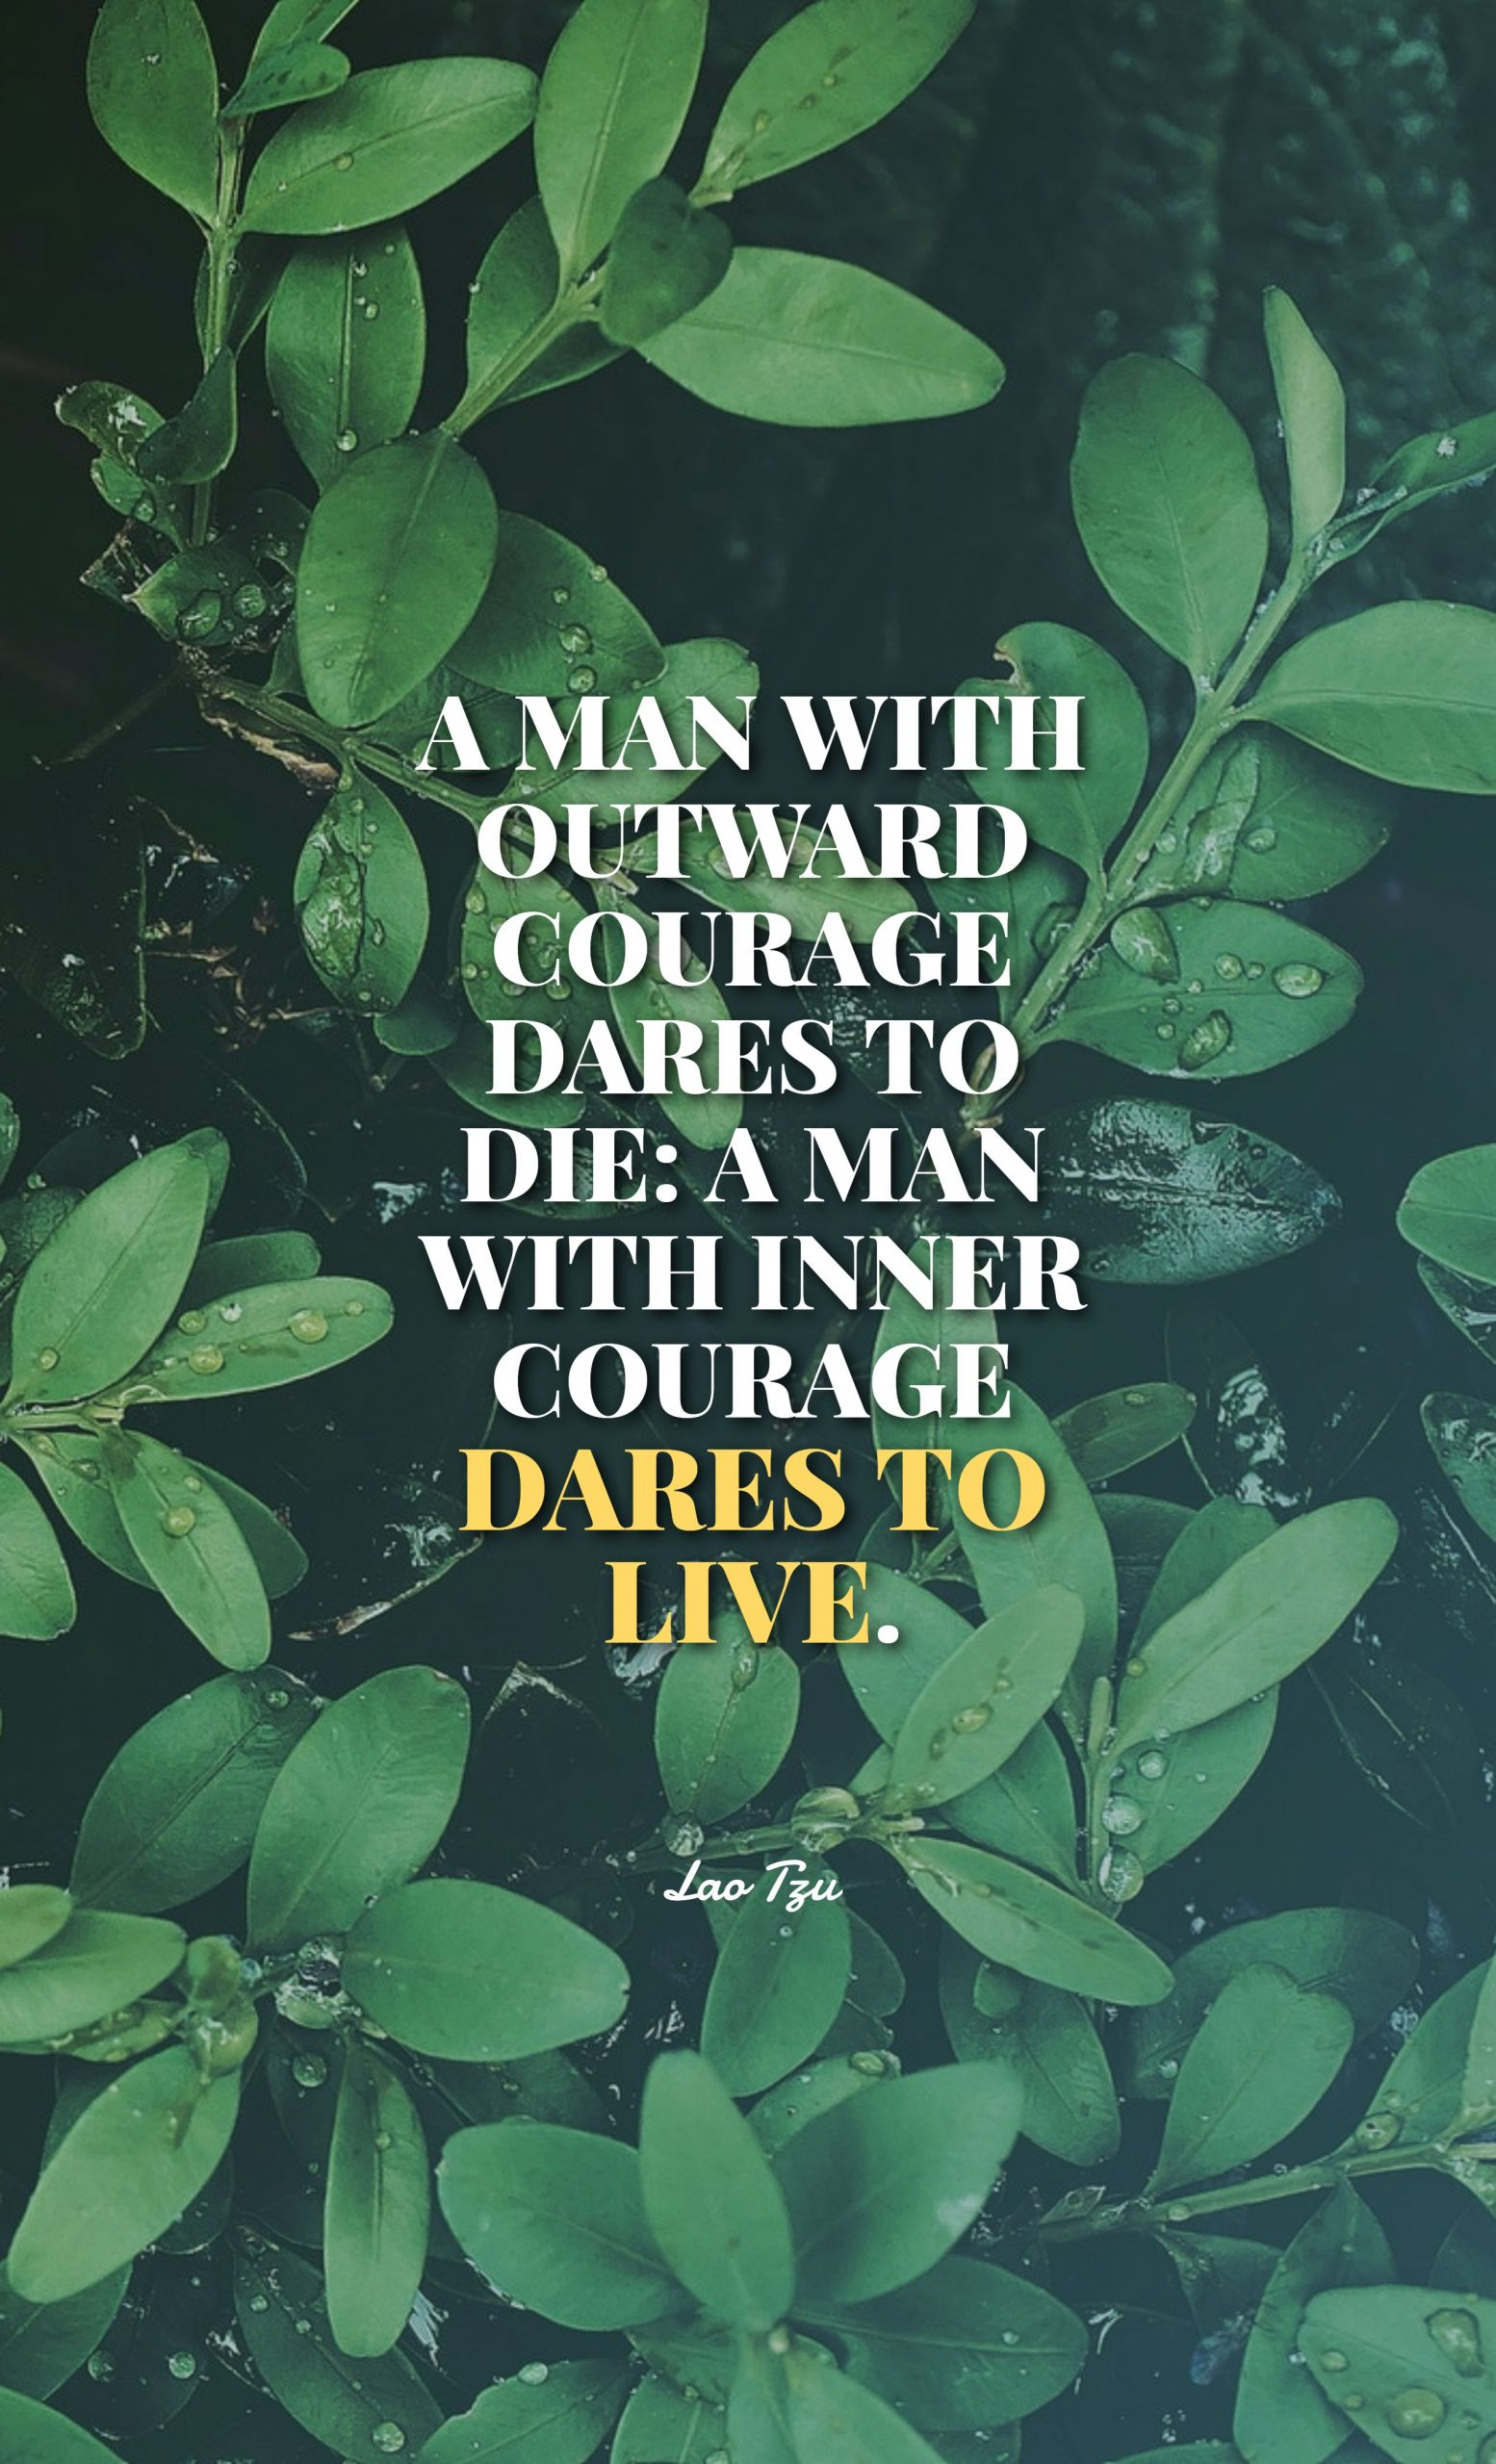 Quotes image of A man with outward courage dares to die: a man with inner courage dares to live.